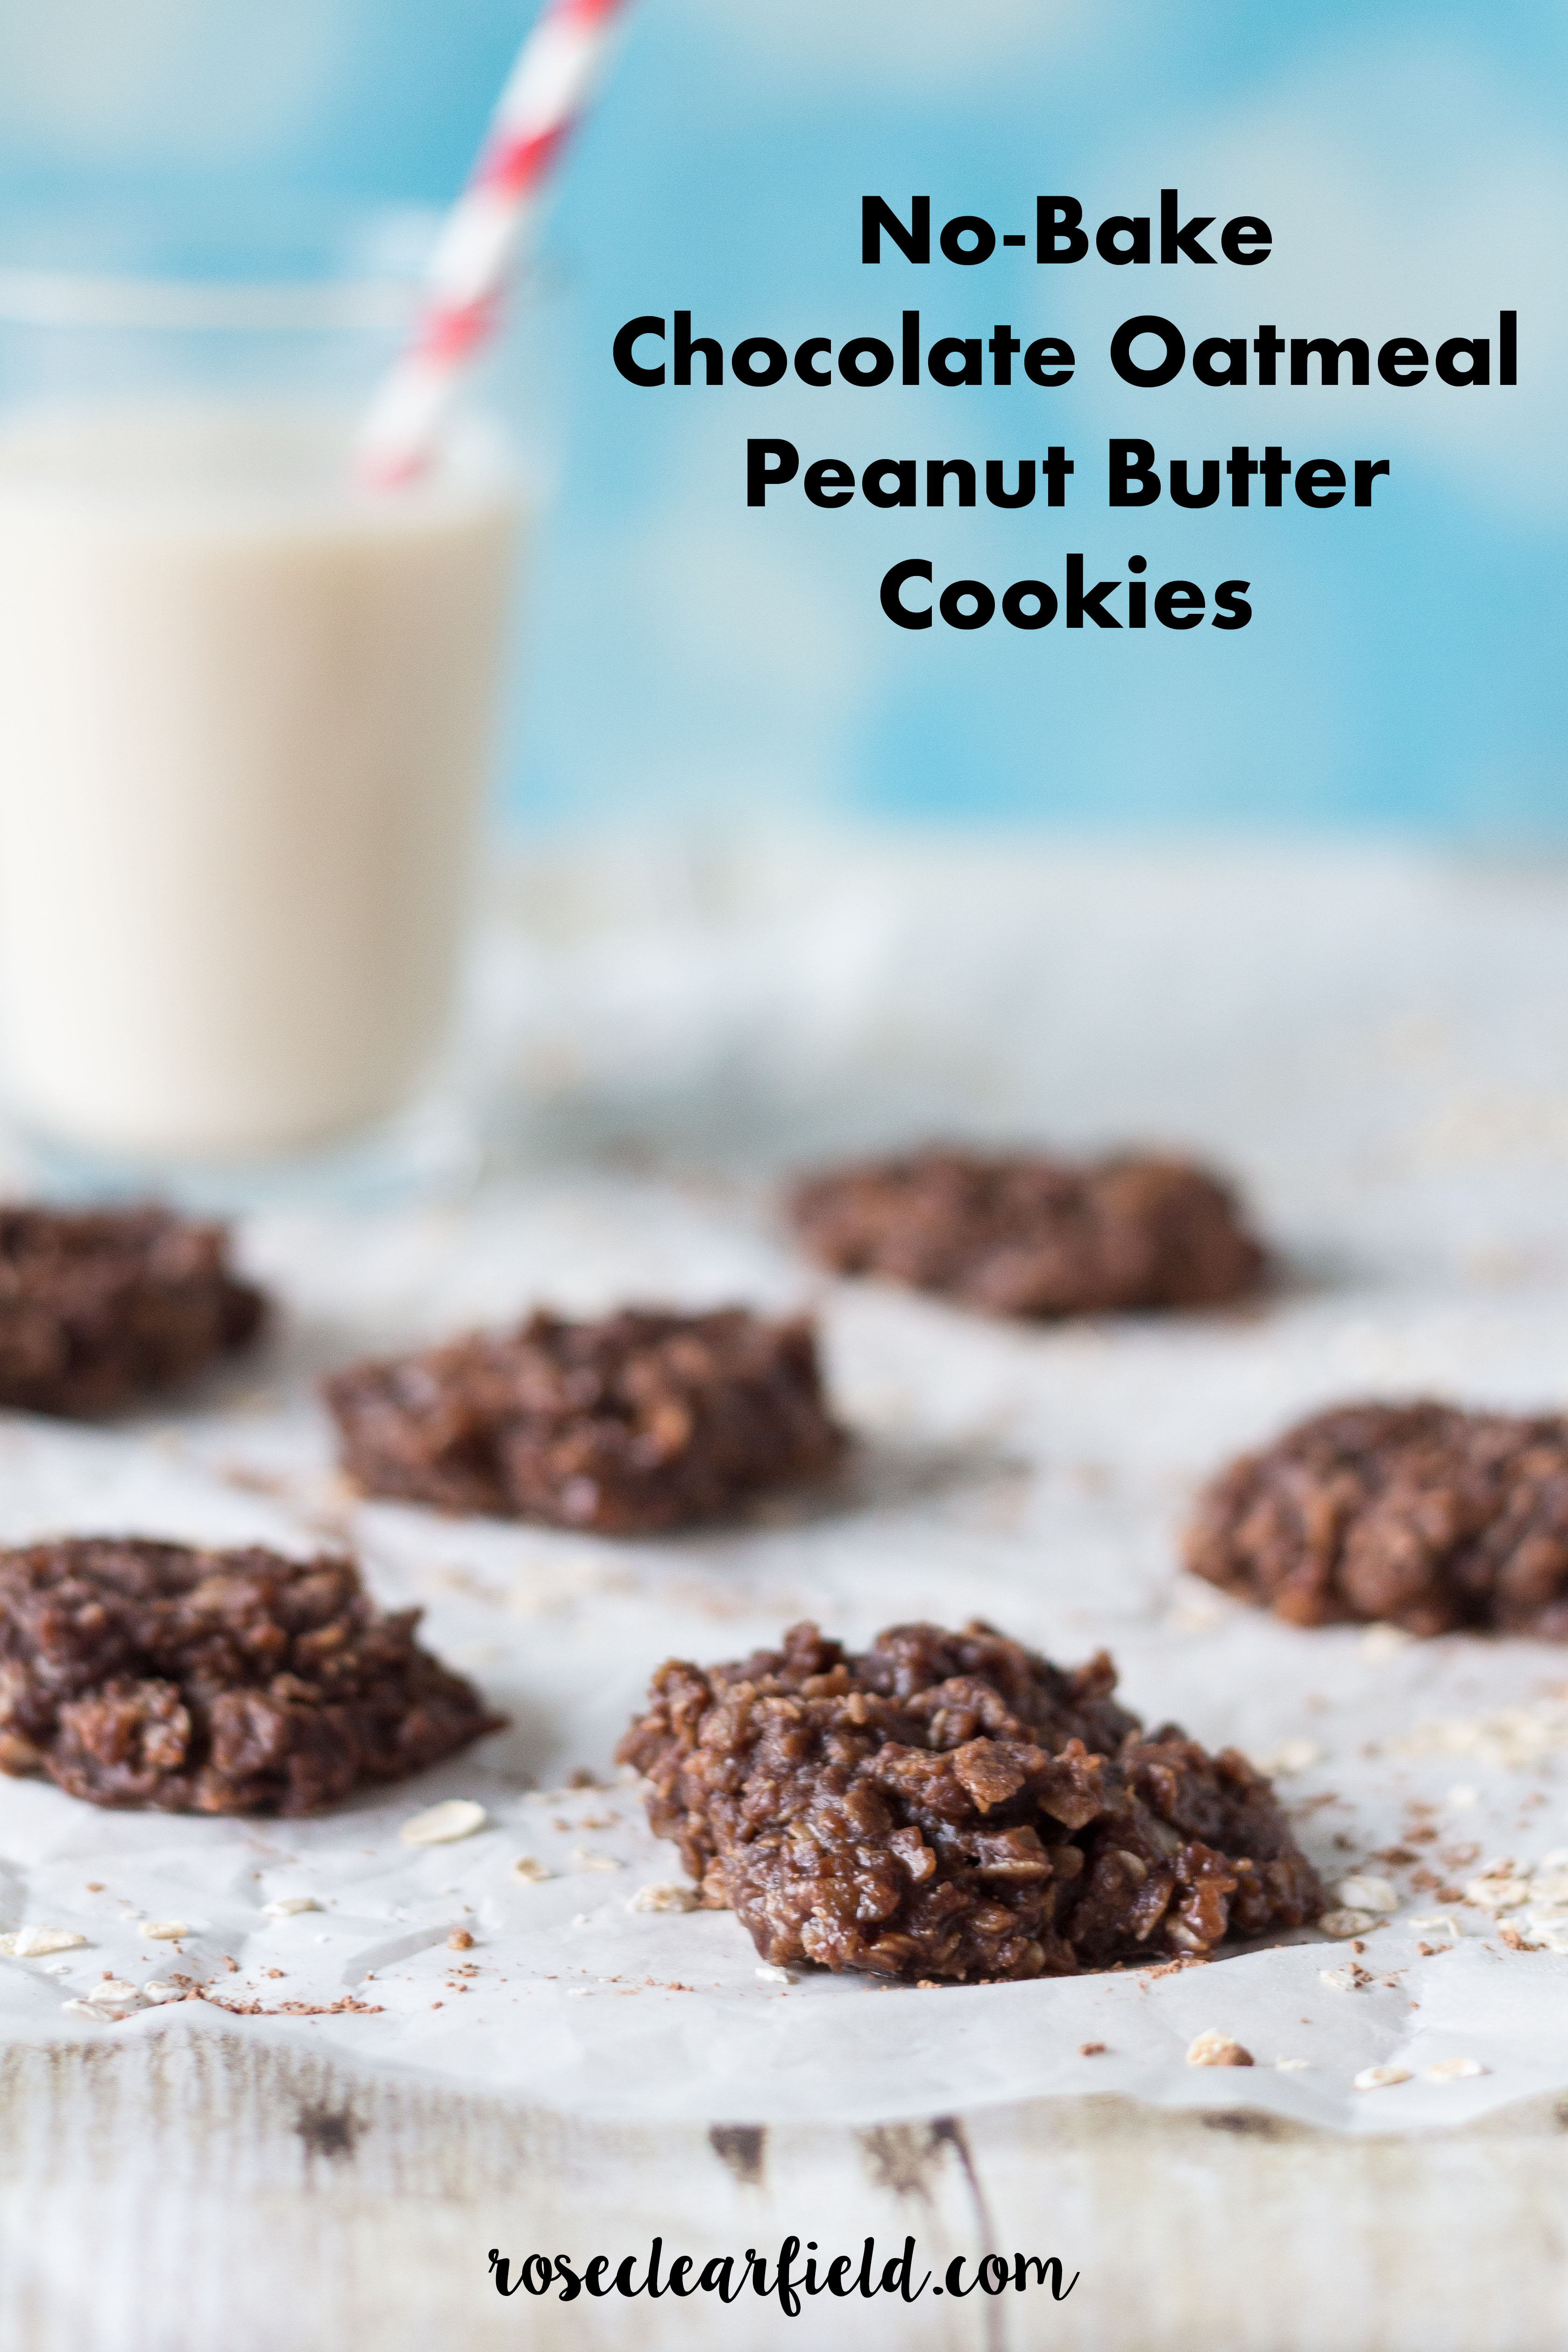 No-Bake Chocolate Oatmeal Peanut Butter Cookies | http://www.roseclearfield.com